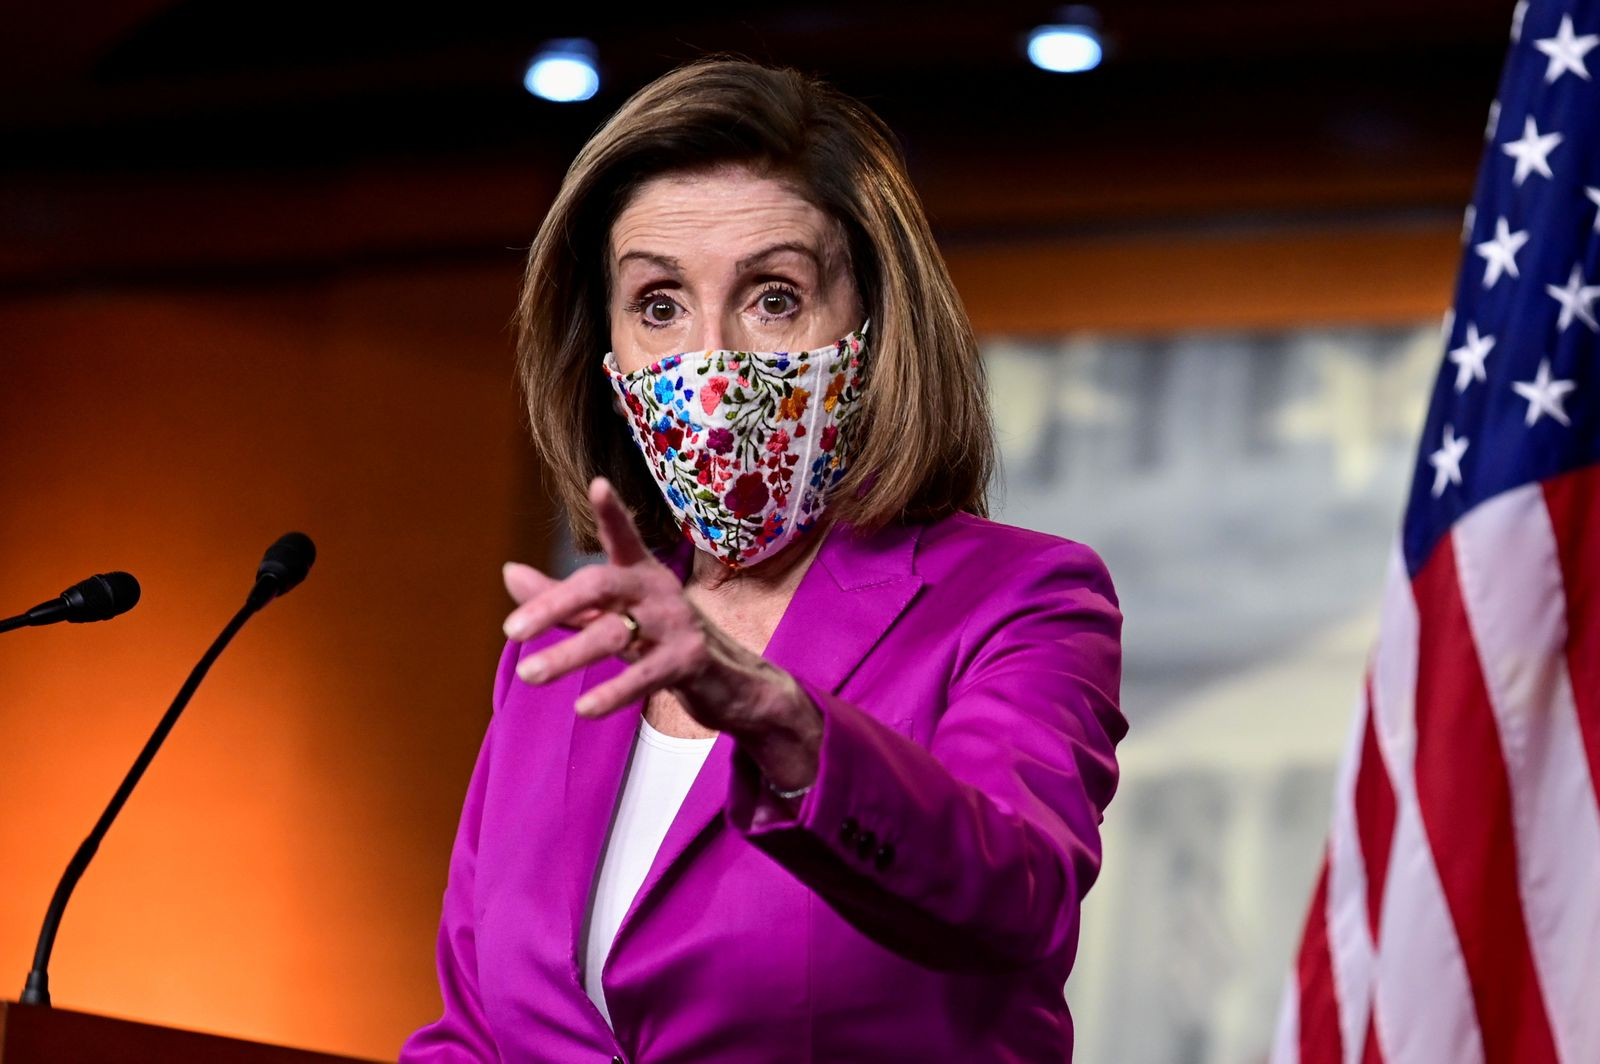 FILE PHOTO: U.S. House Speaker Nancy Pelosi holds news conference at U.S. Capitol a day after violent protests in Washington